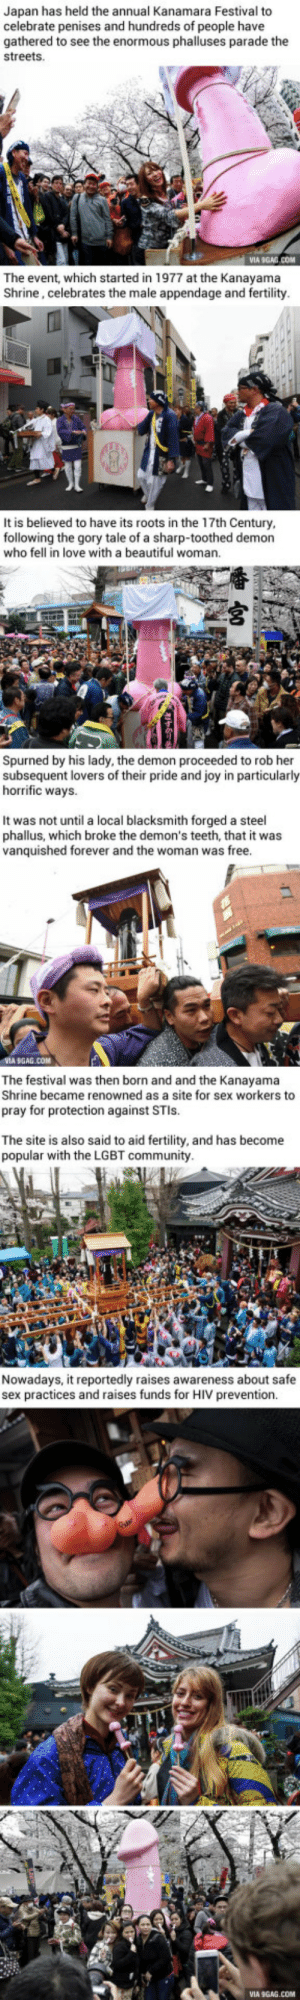 Japan holds its annual Penis Festival…: Japan has held the annual Kanamara Festival to  celebrate penises and hundreds of people have  gathered to see the enormous phalluses parade the  streets.  The event, which started in 1977 at the Kanayama  Shrine, celebrates the male appendage and fertility.  CH  It is believed to have its roots in the 17th Century,  following the gory tale of a sharp-toothed demon  who fell in love with a beautiful woman.  Spurned by his lady, the demon proceeded to rob her  subsequent lovers of their pride and joy in particularly  horrific ways.  It was not until a local blacksmith forged a steel  phallus, which broke the demon's teeth, that it was  vanquished forever and the woman was free.  VIA 9GAG.COM  The festival was then born and and the Kanayama  Shrine became renowned as a site for sex workers to  pray for protection against STIS  The site is also said to aid fertility, and has become  popular with the LGBT community.  Nowadays, it reportedly raises awareness about safe  sex practices and raises funds for HIV prevention Japan holds its annual Penis Festival…